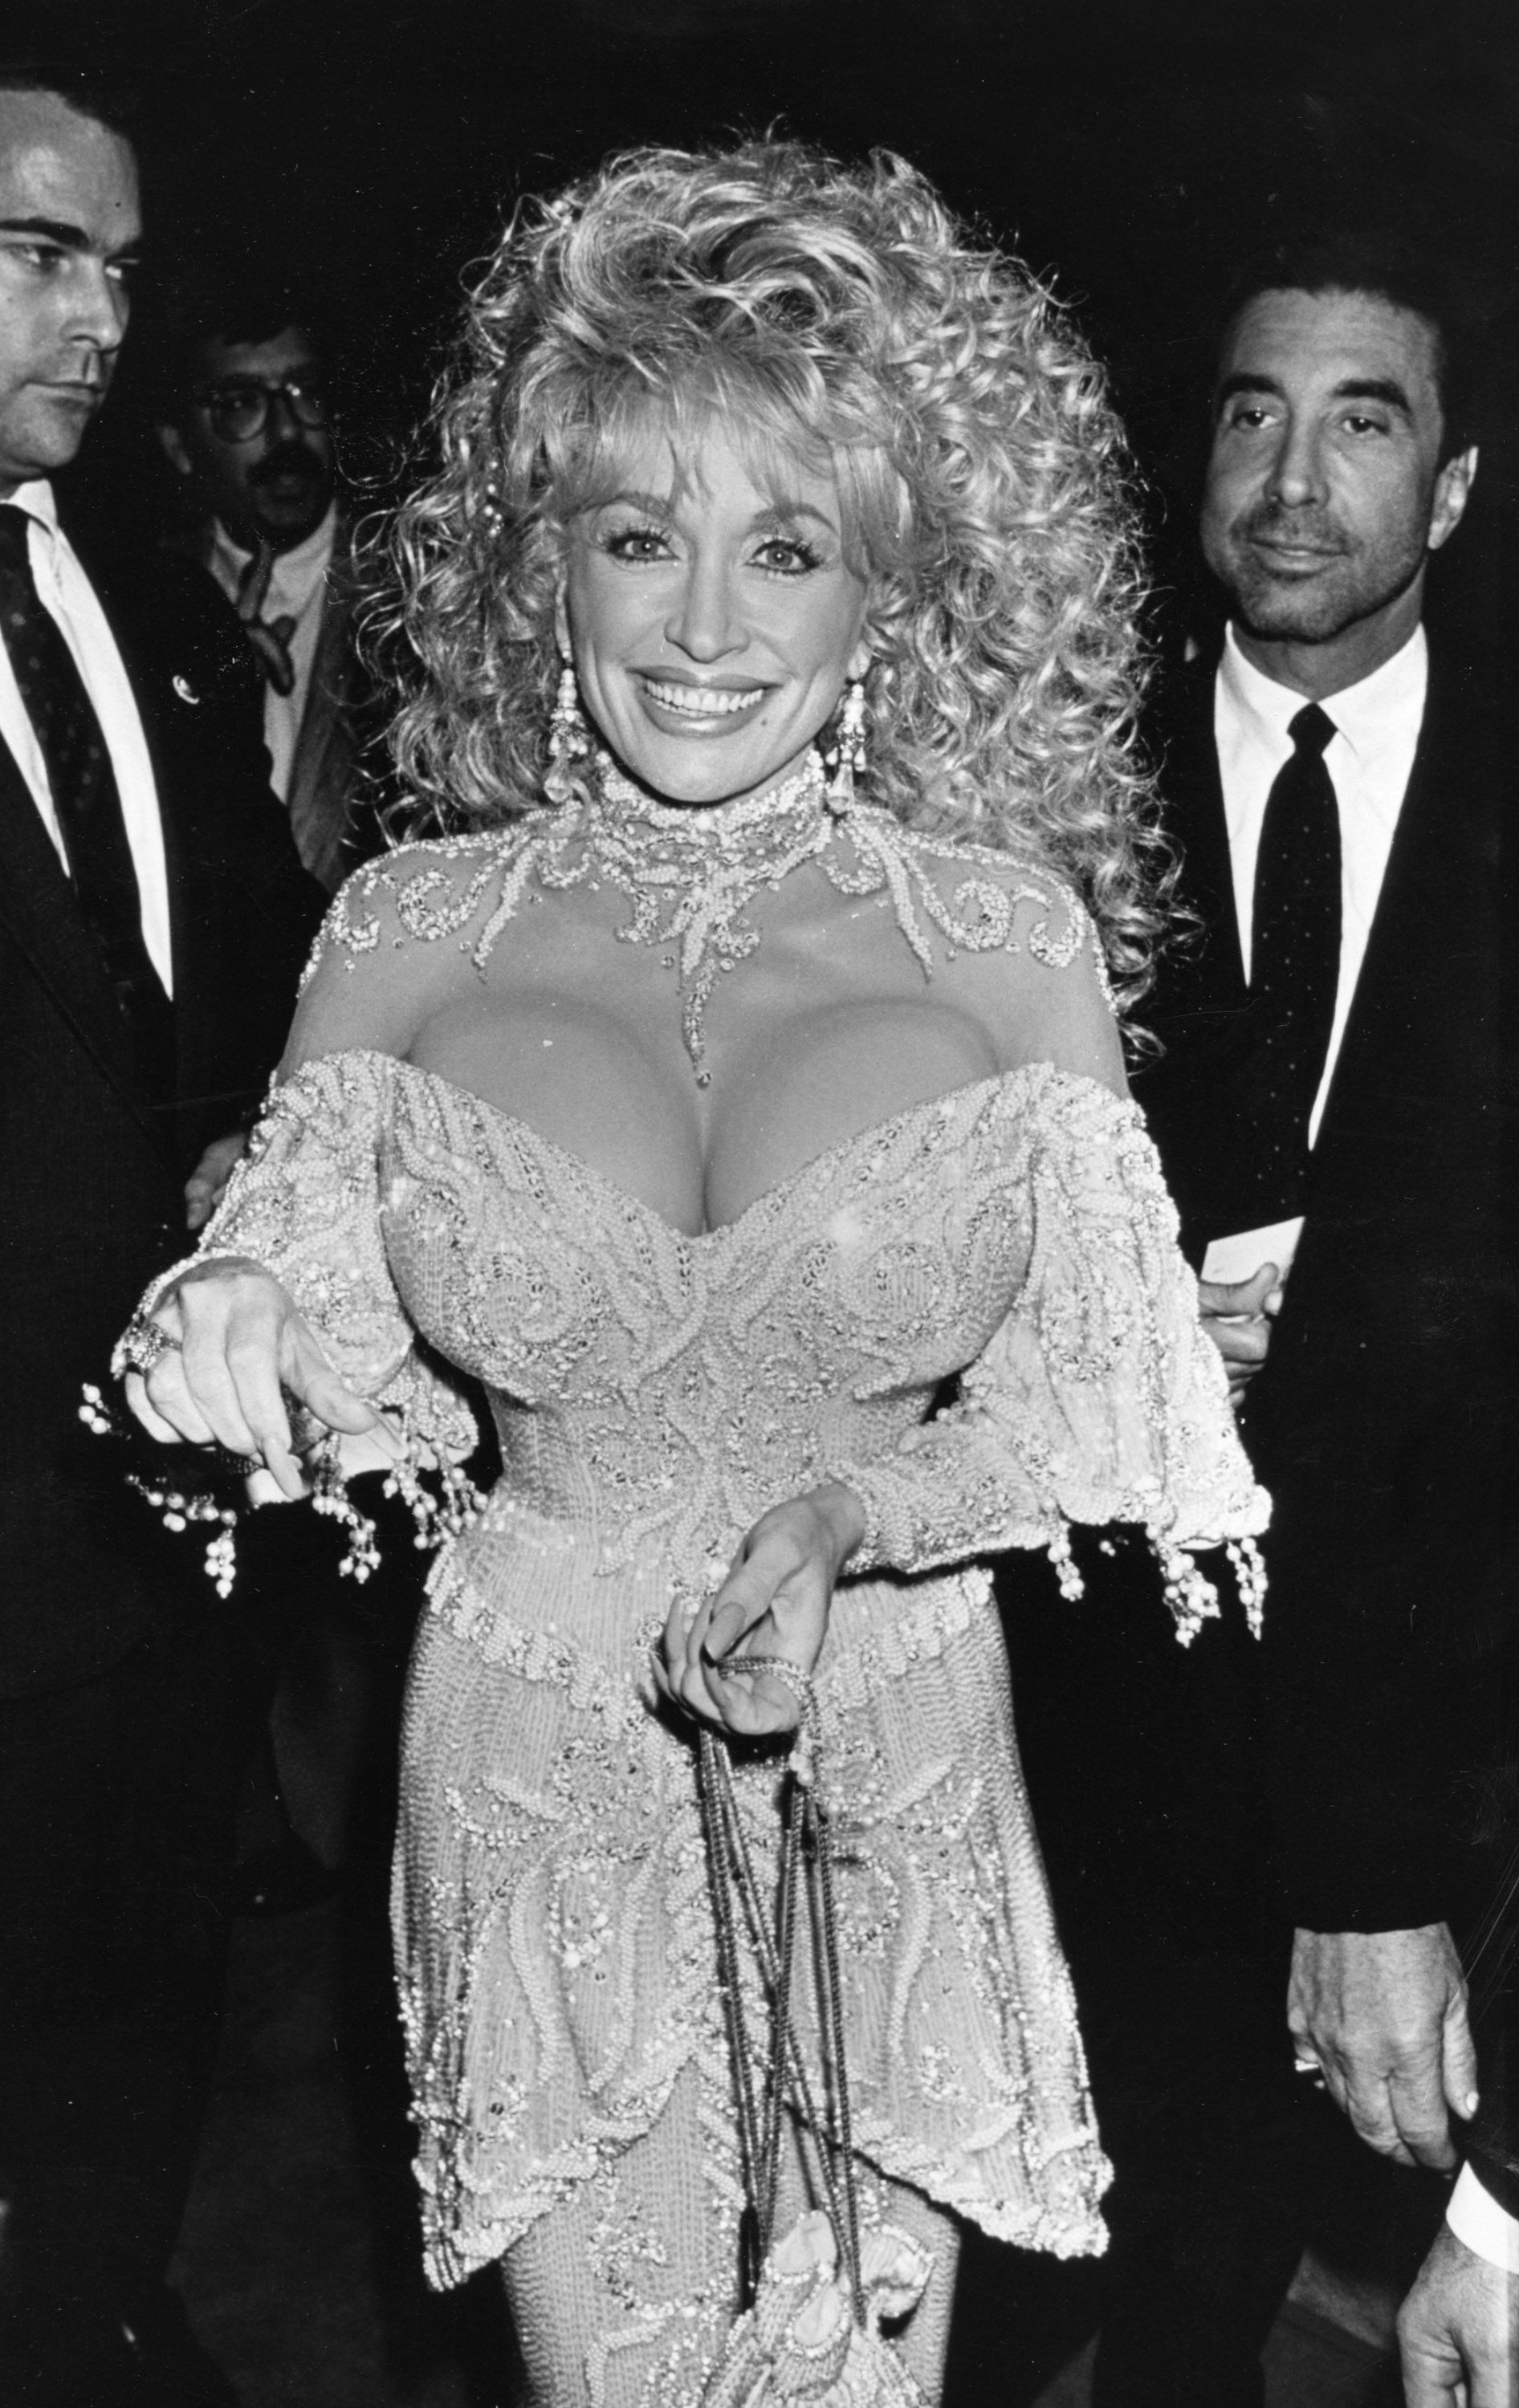 Does dolly parton have real boobs